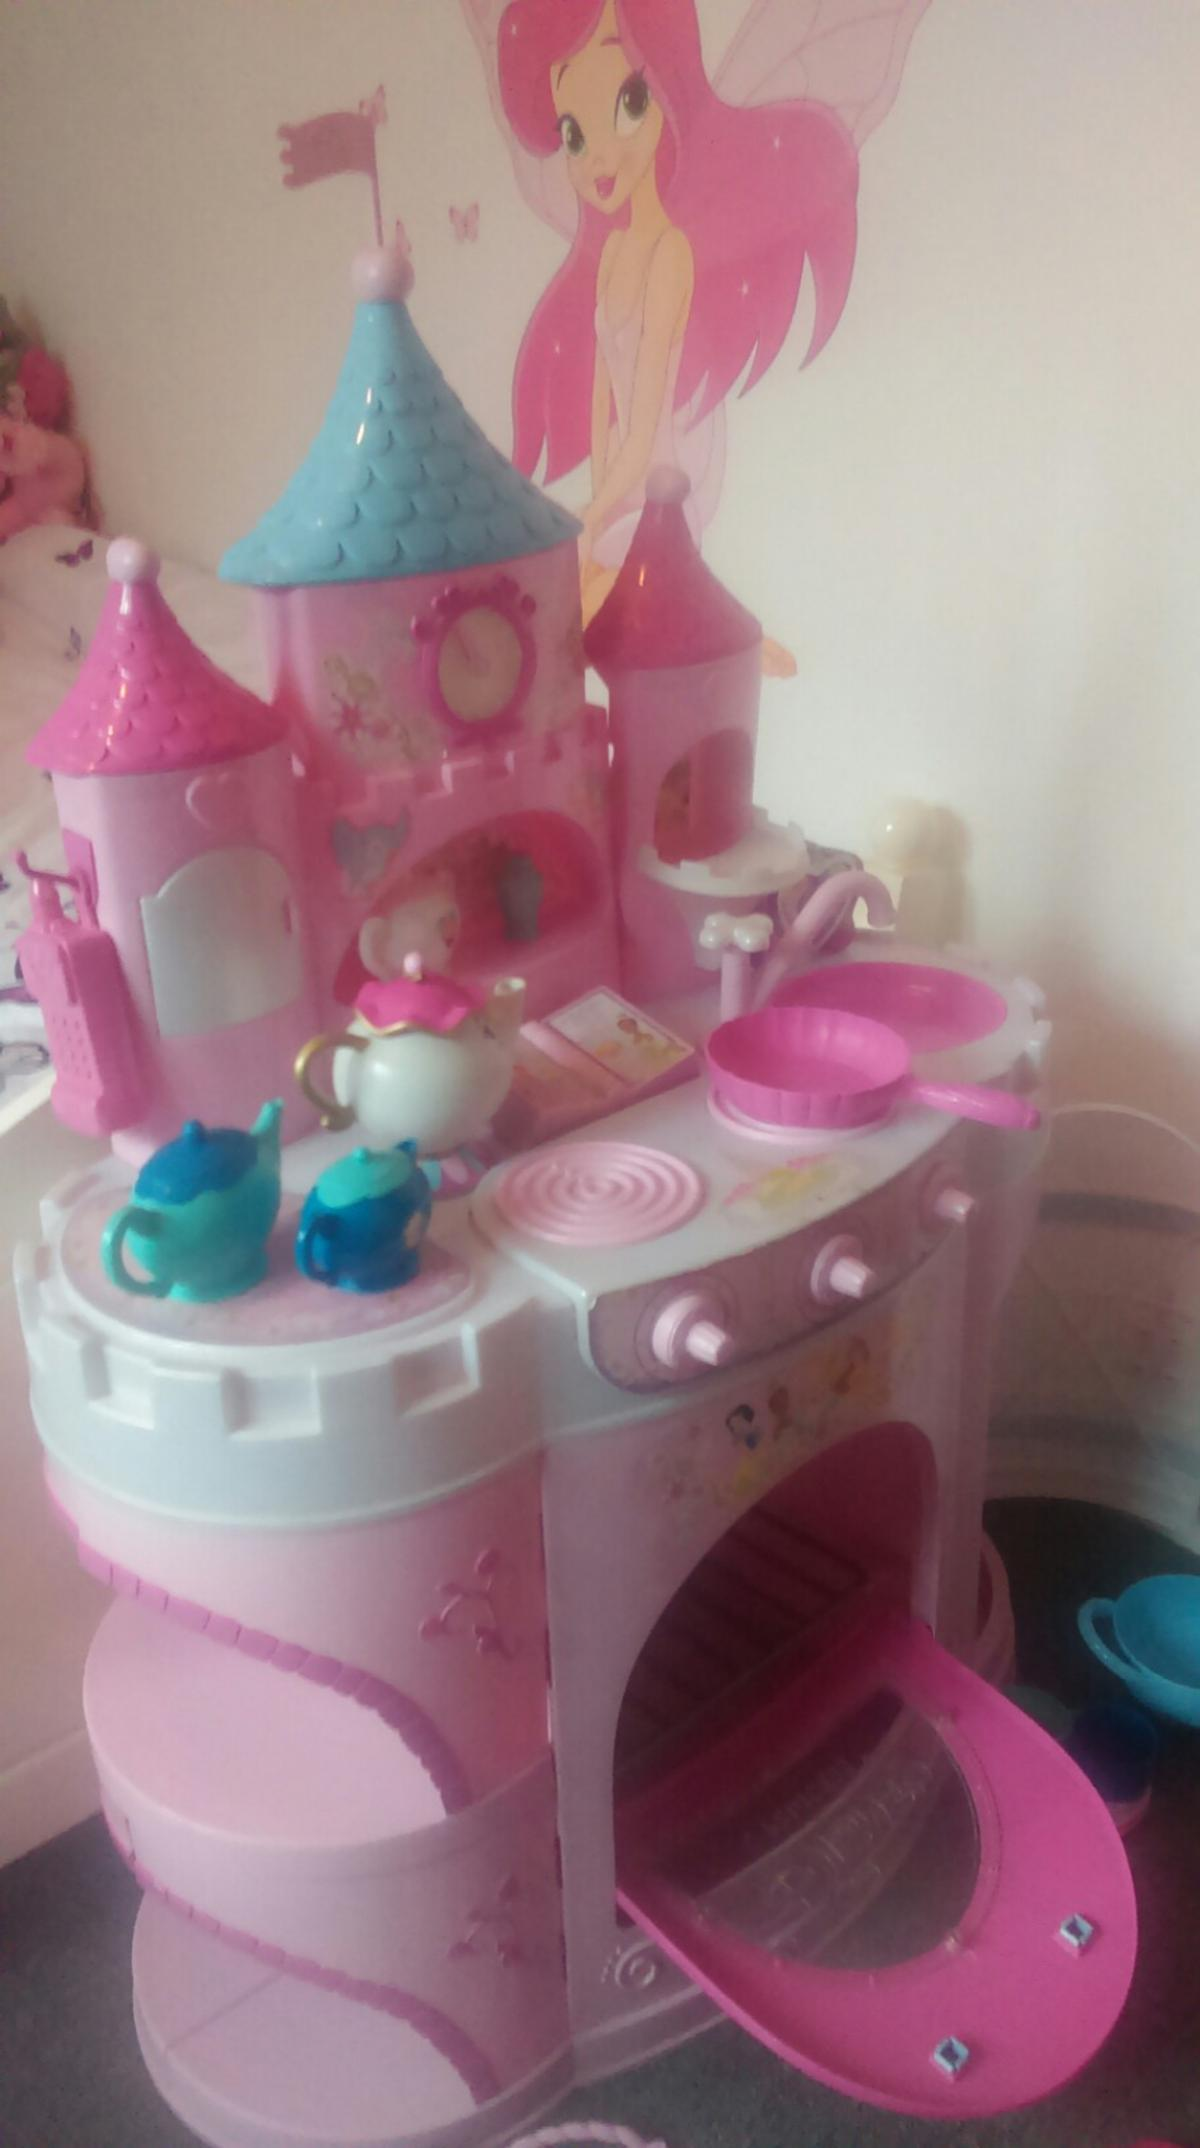 beautiful kitchen keeps ur child entertainment for hrs ideal for 3plus age I have 40+ iteams to come with the kitchen I payed 150 pounds for this kitchen years ago so selling at a great price I have original box